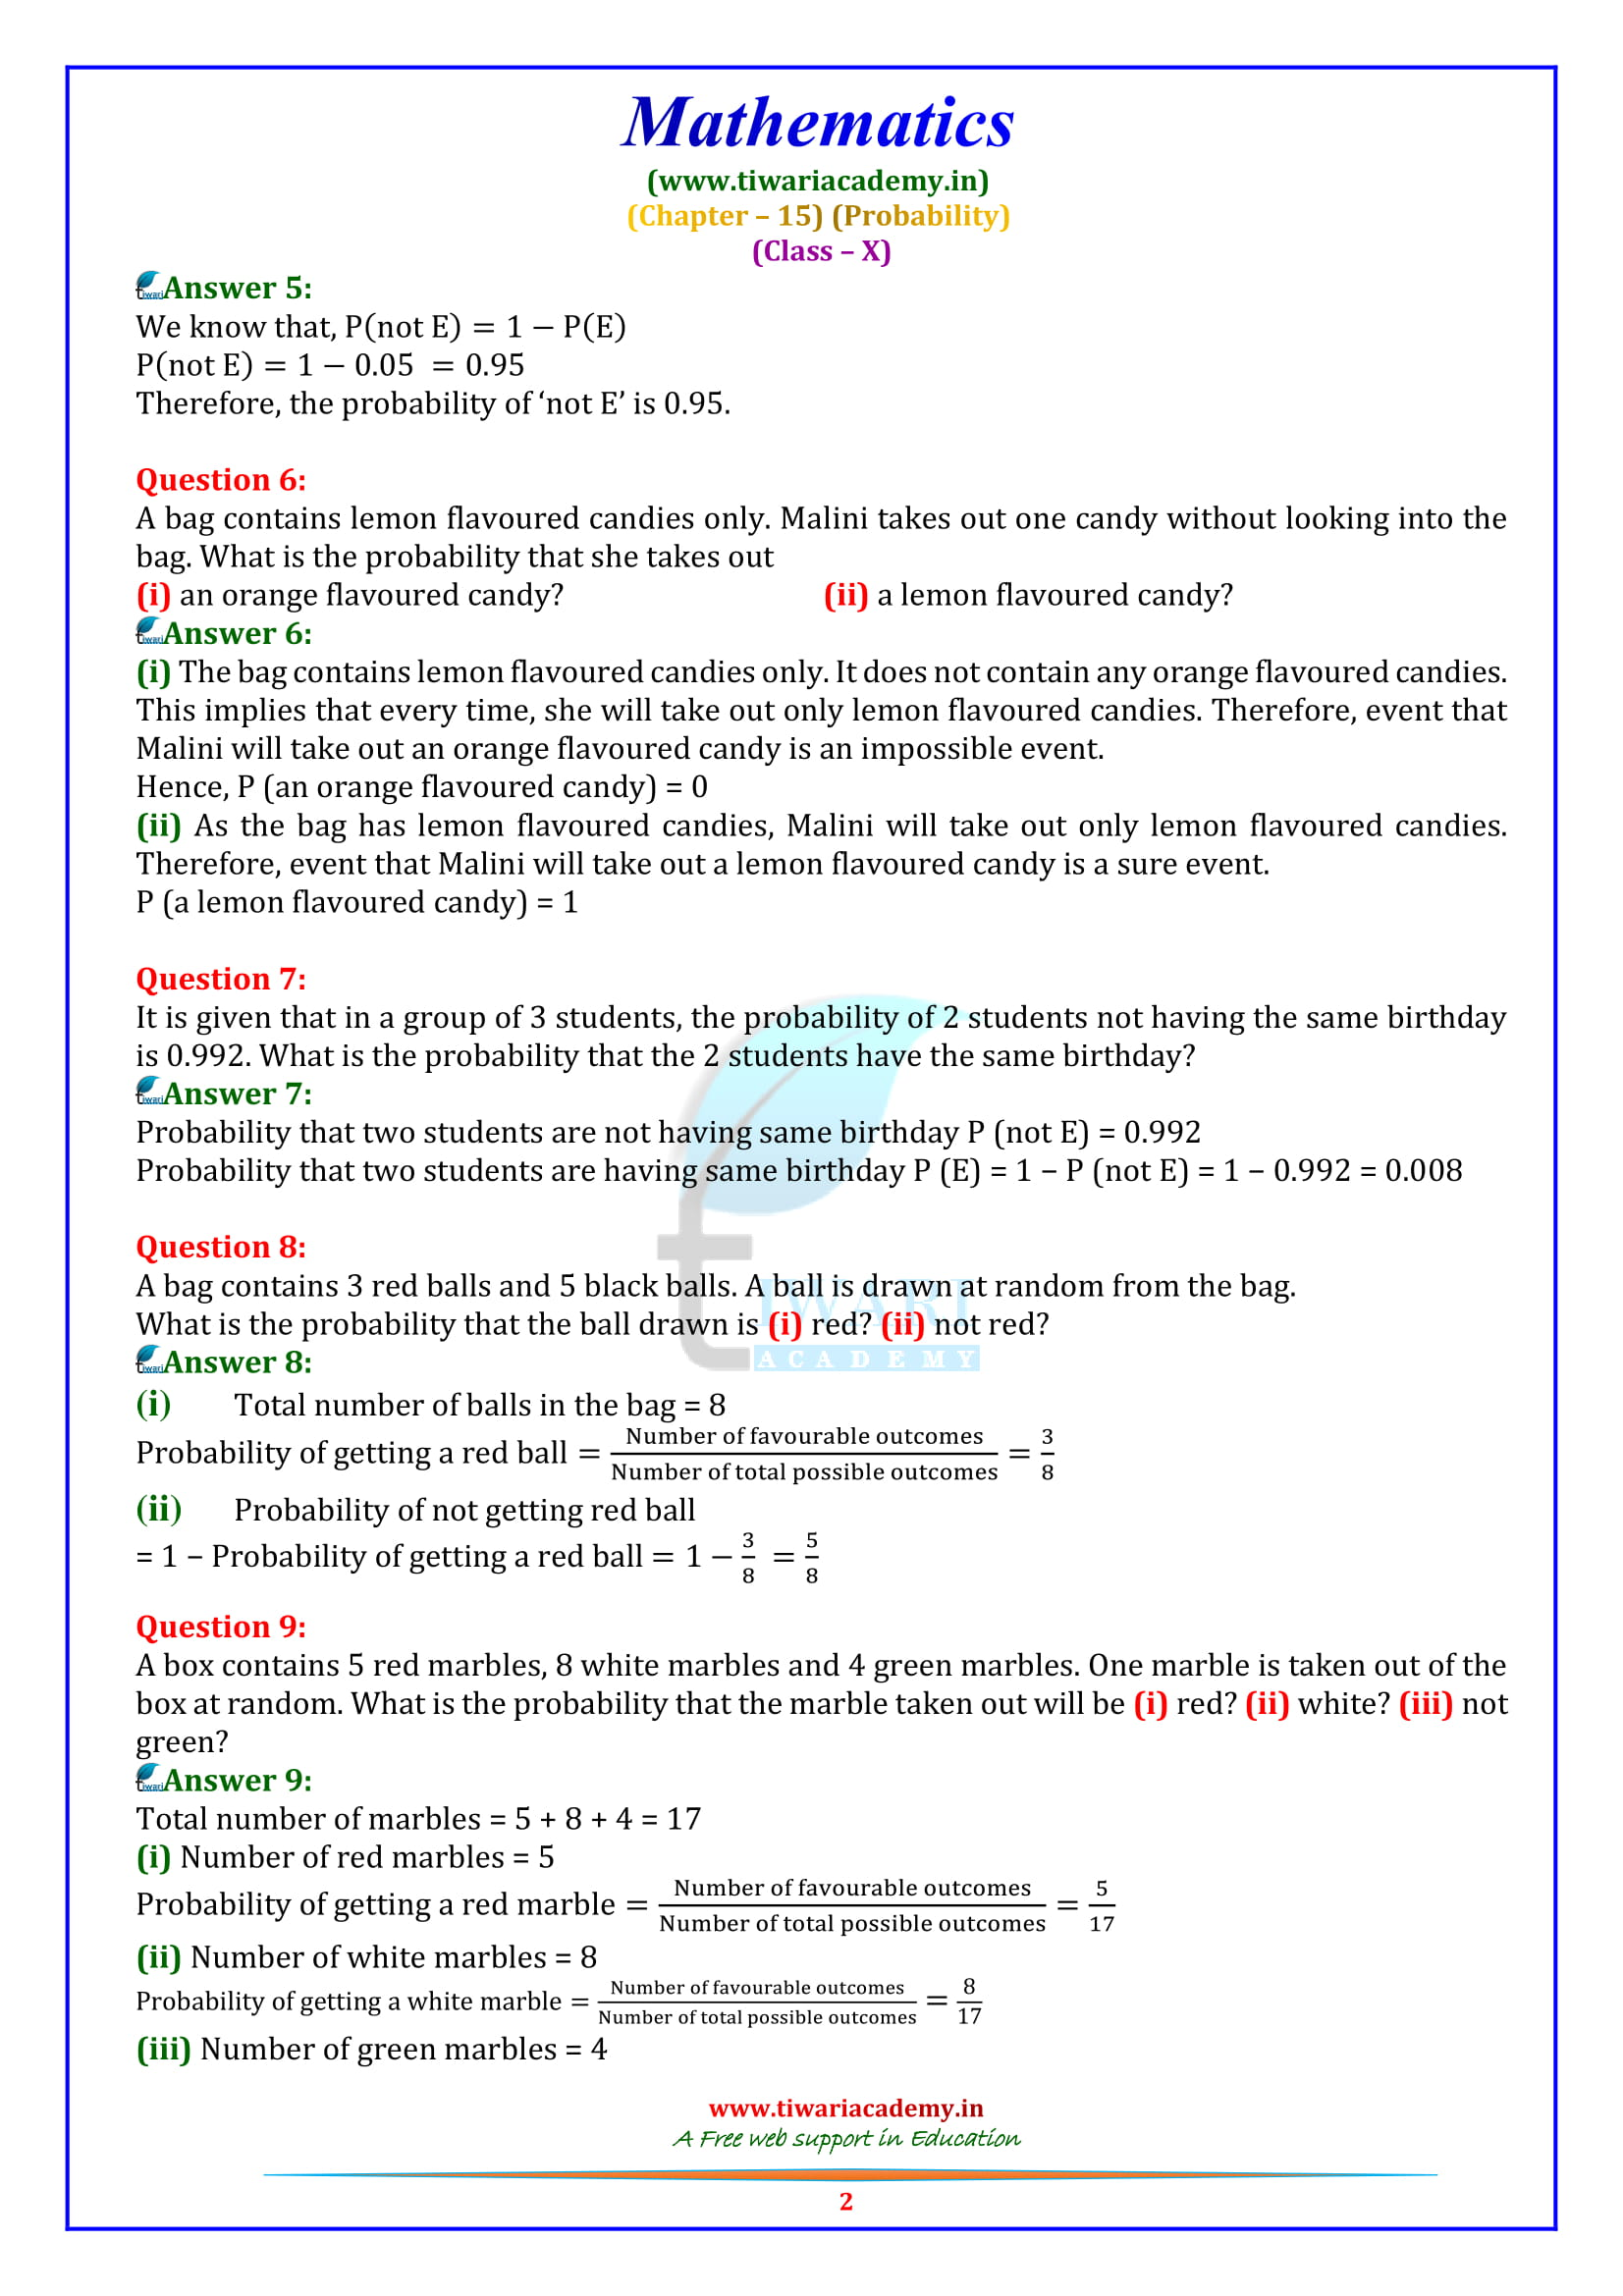 NCERT Solutions for Class 10 Maths Chapter 15 Exercise 15.1 in English medium